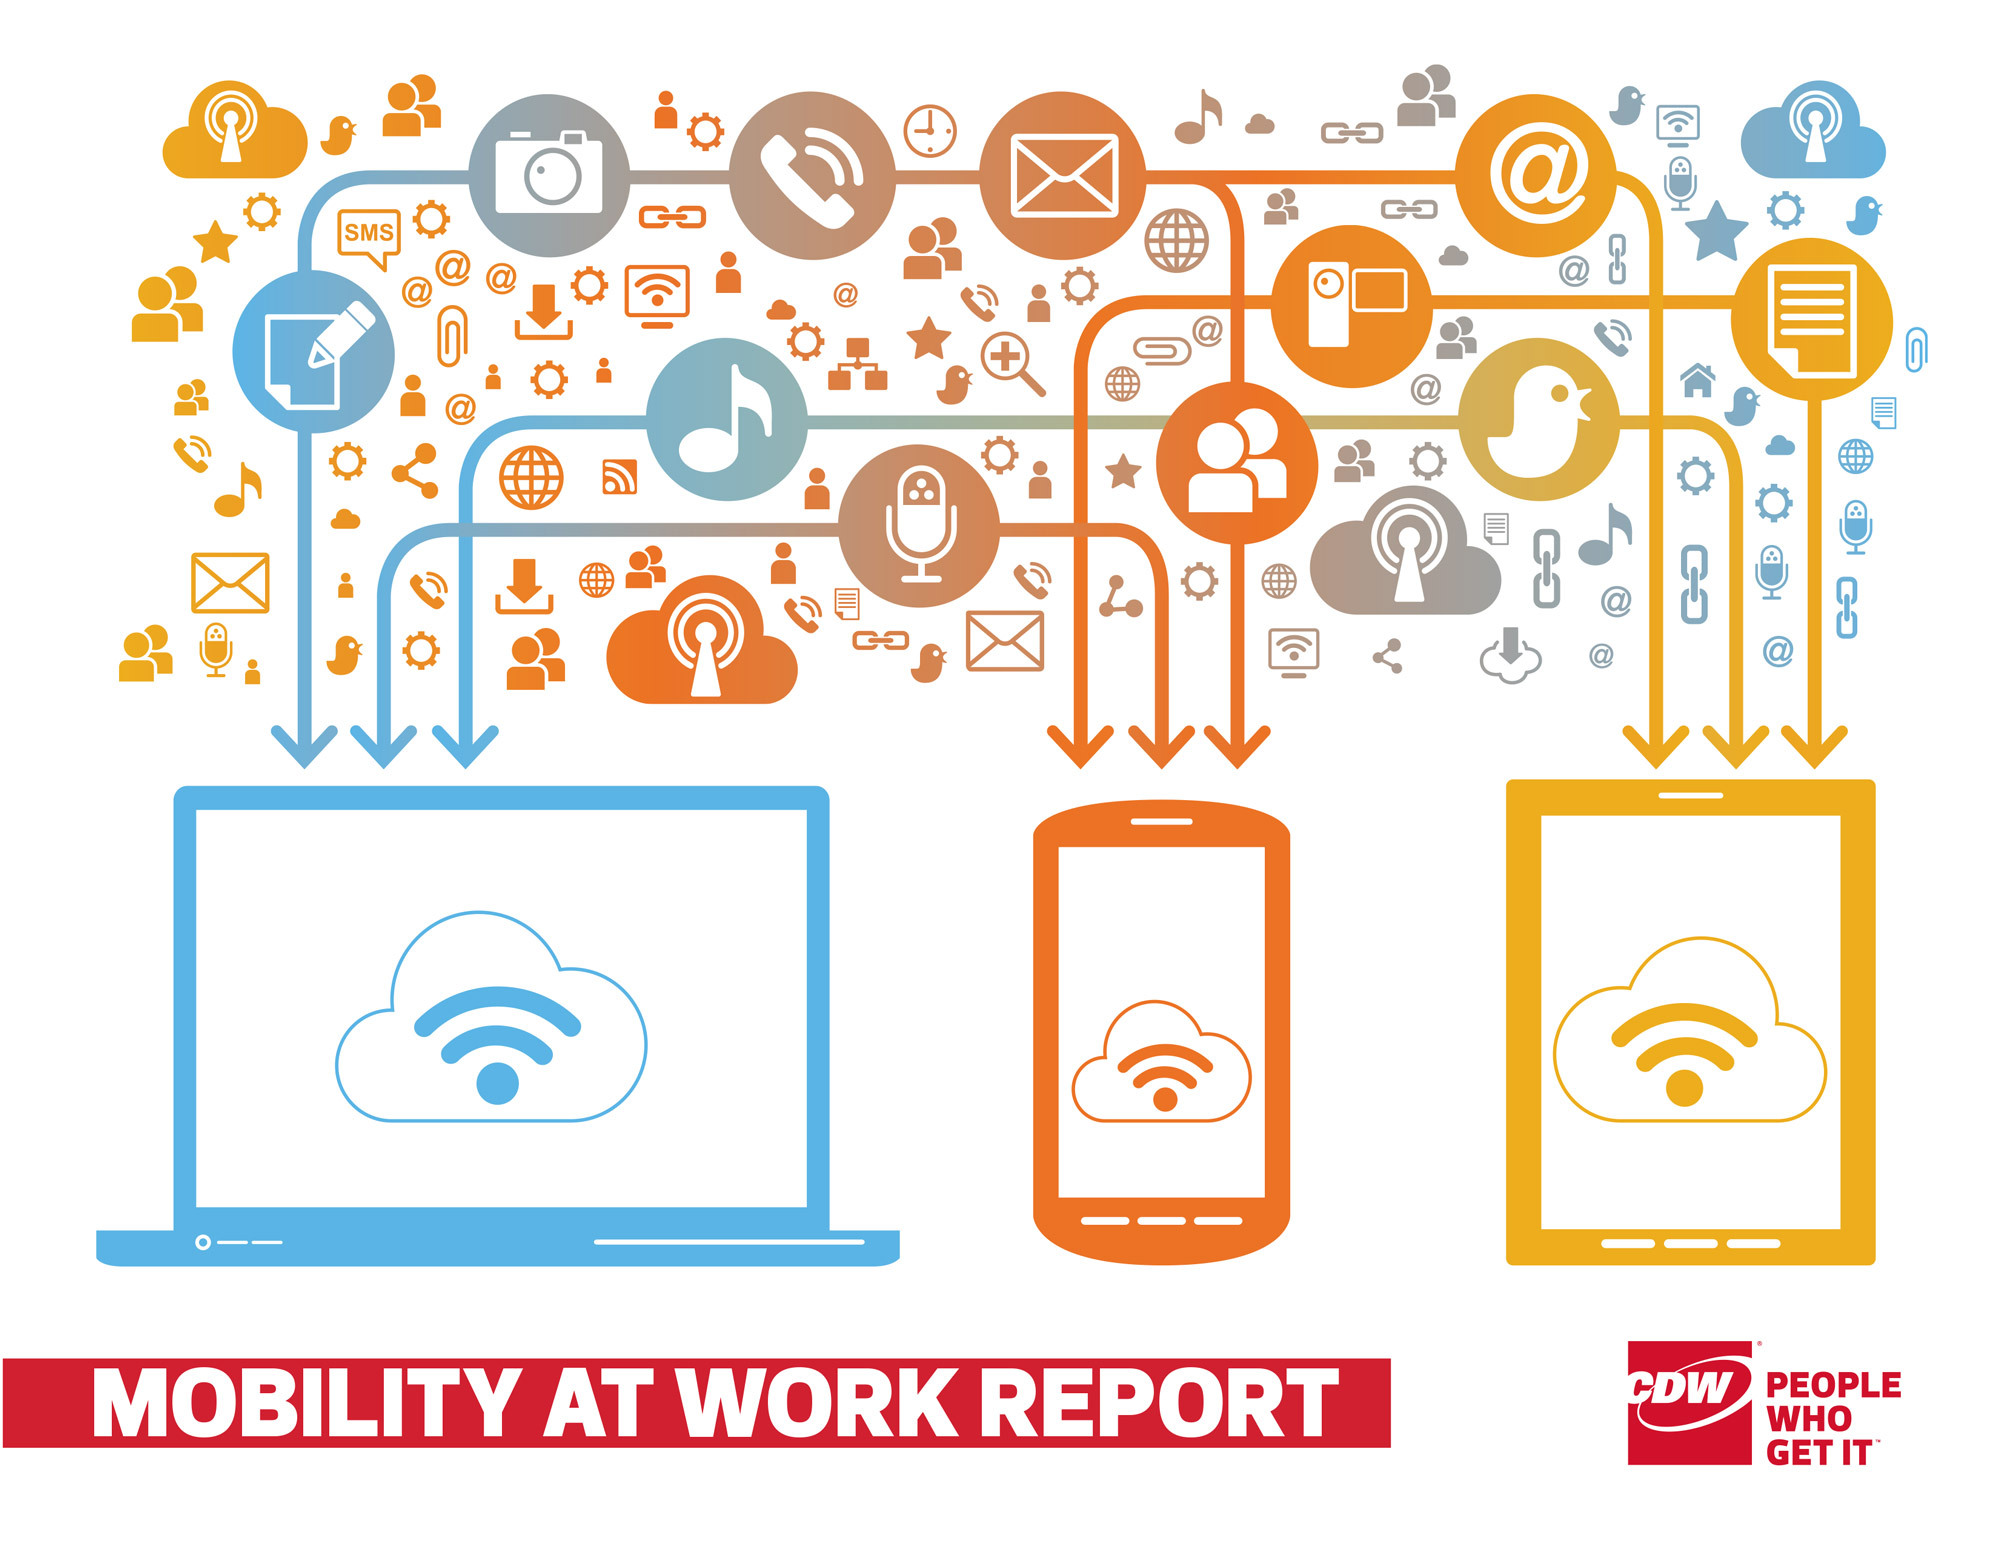 CDW Mobility at Work Report (Graphic: Business Wire)